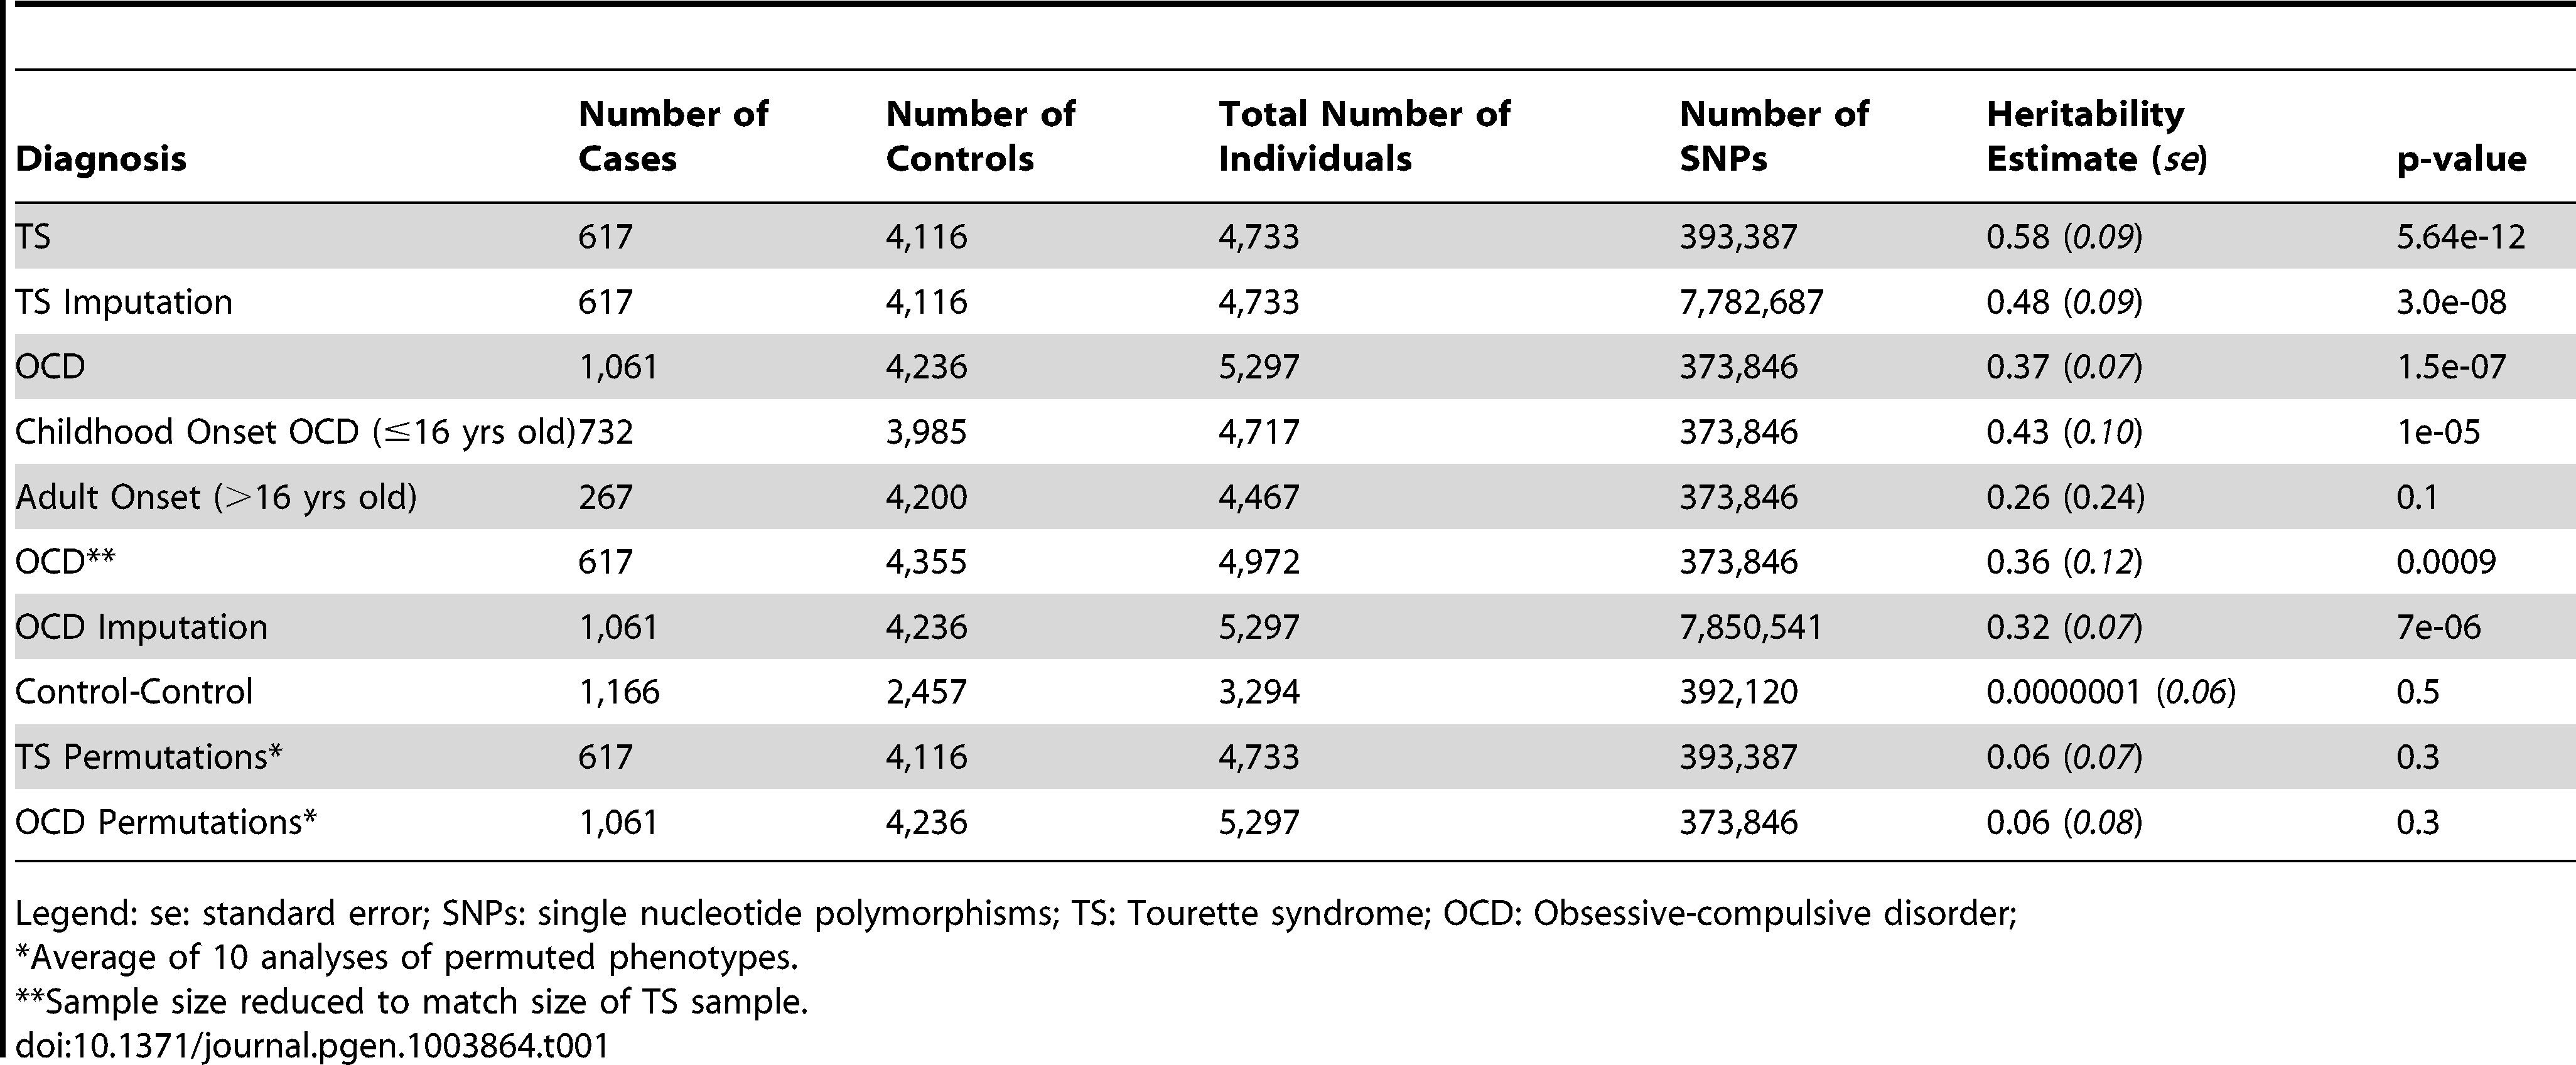 Overall heritability analysis of obsessive-compulsive disorder and Tourette syndrome.